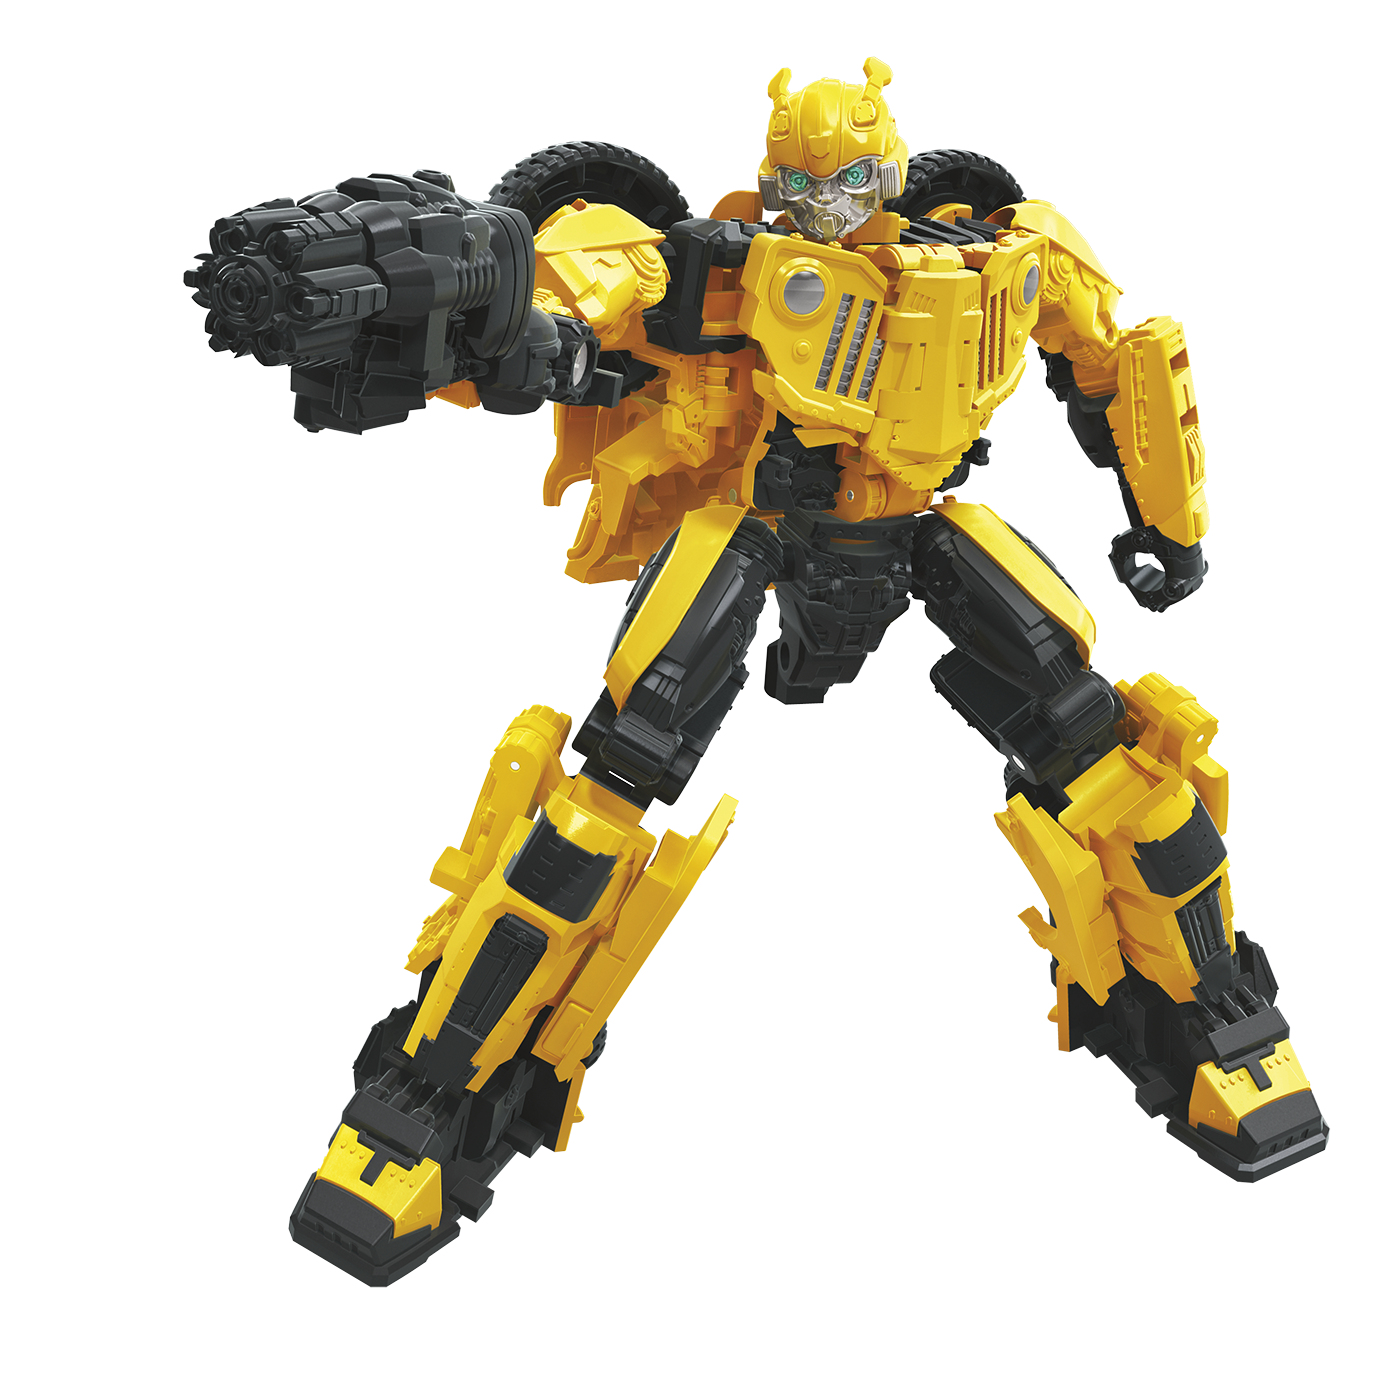 Transformers News: Official Images and Pre-Orders for Transformers Studio Series Offroad Bumblebee, Roadbuster, Shatter